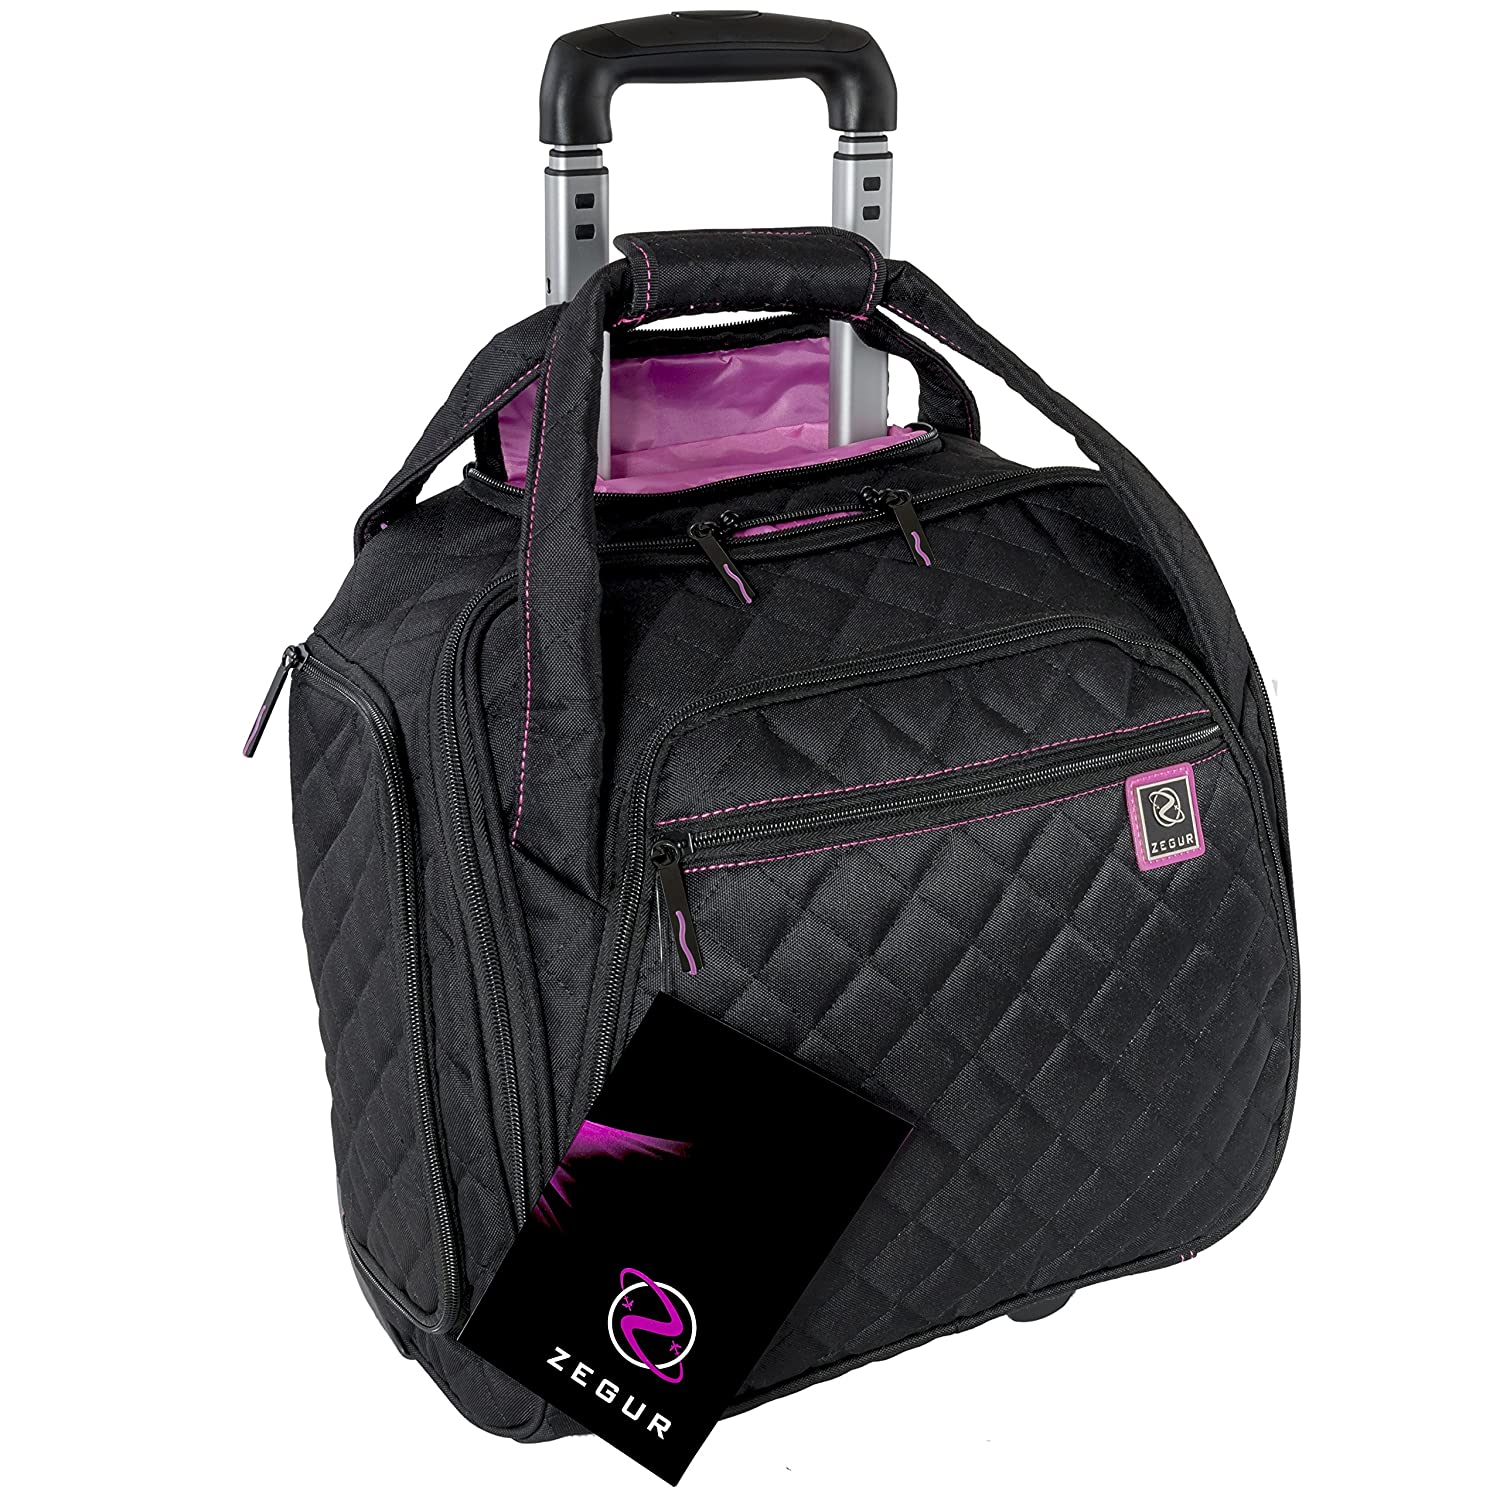 ZEGUR Quilted Rolling Underseat Carry-On Luggage - Wheeled Travel Tote Bag Z-4334